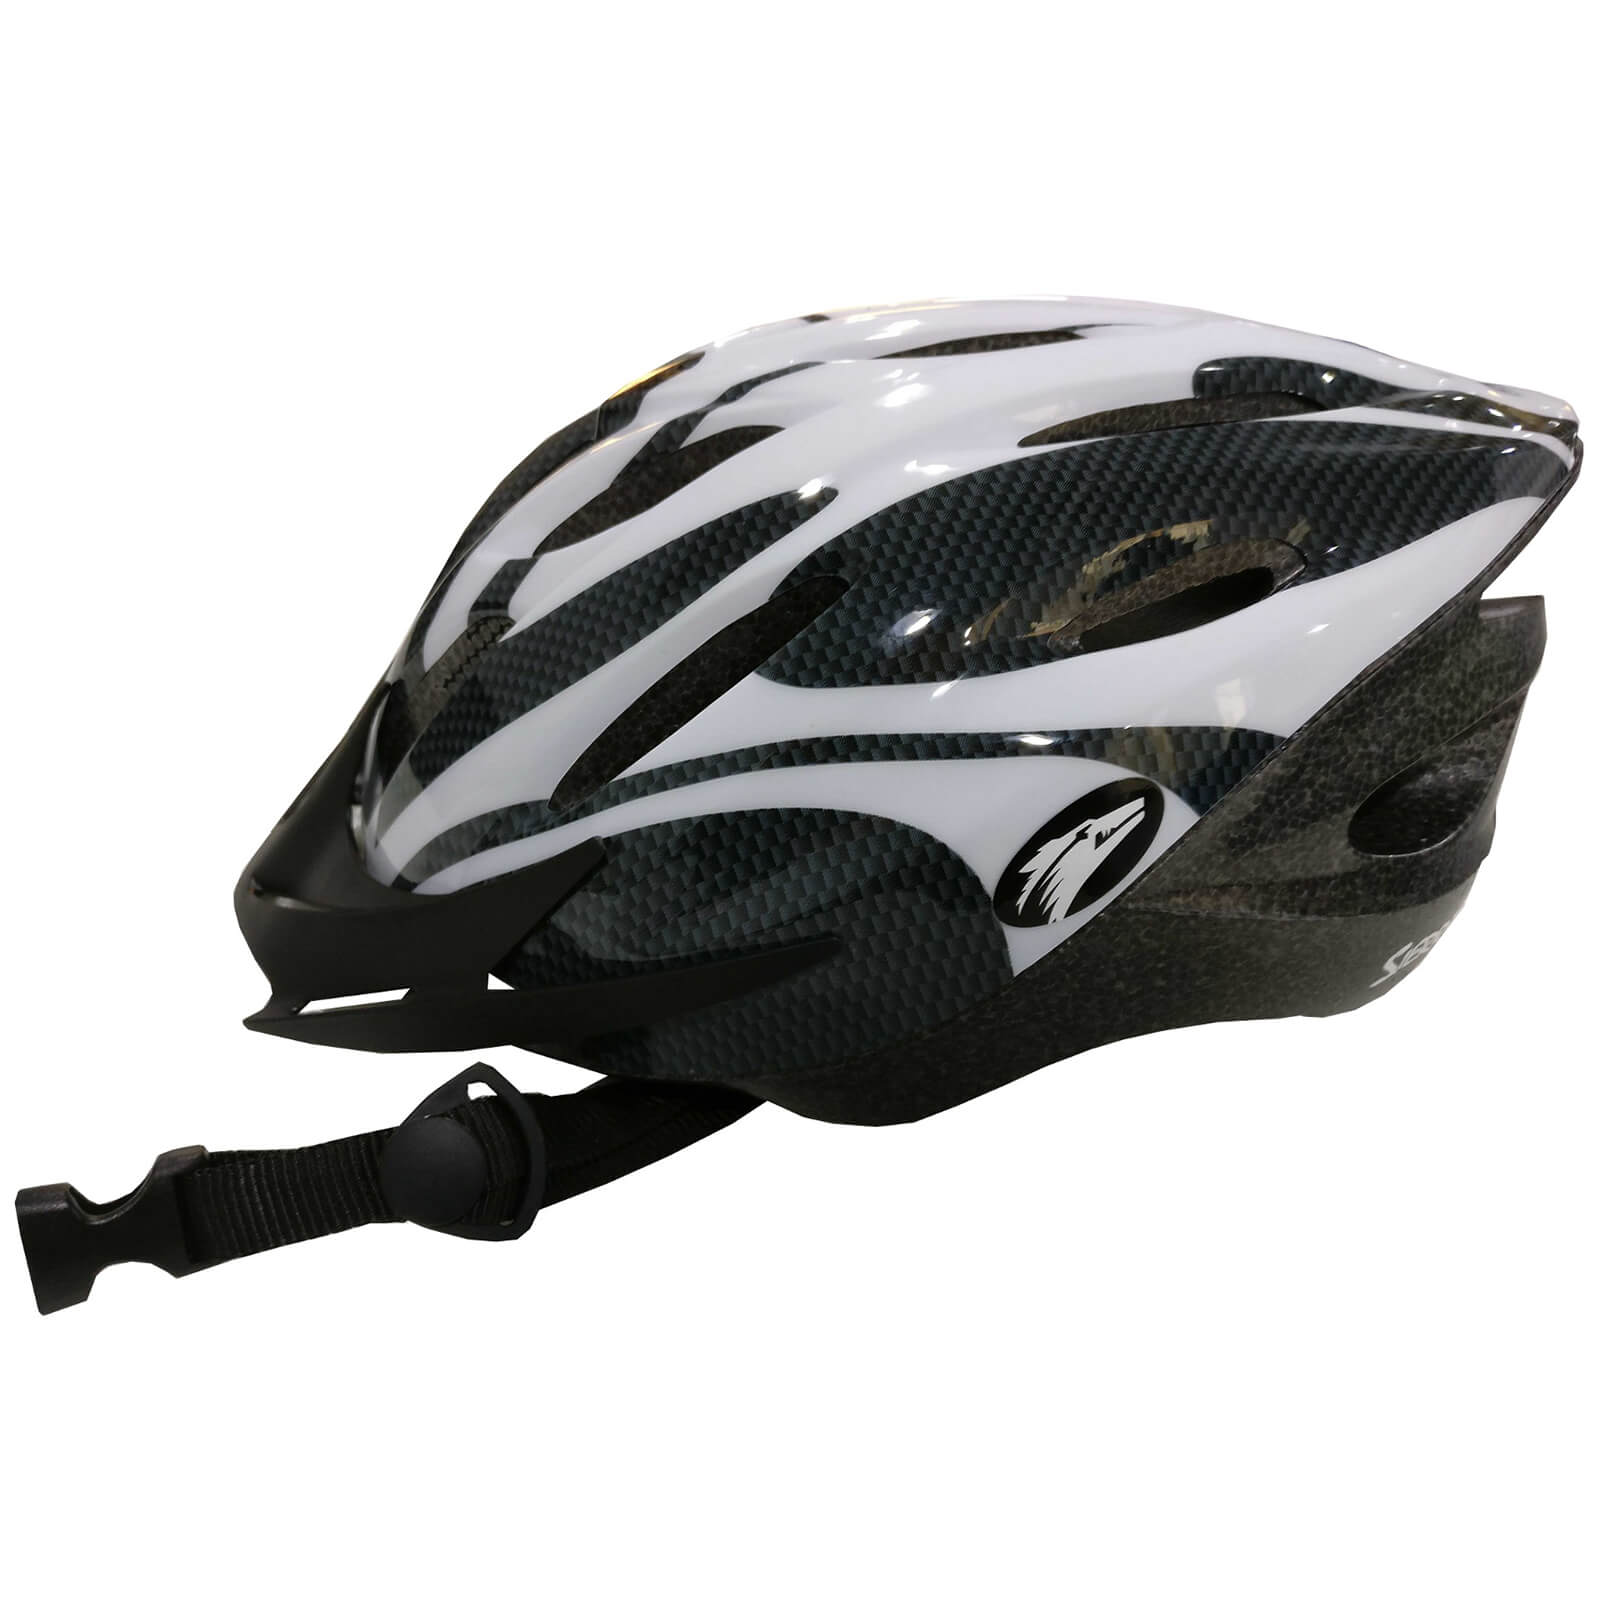 Coyote Sierra Dial Fit Adult Cycling Helmet - L - White